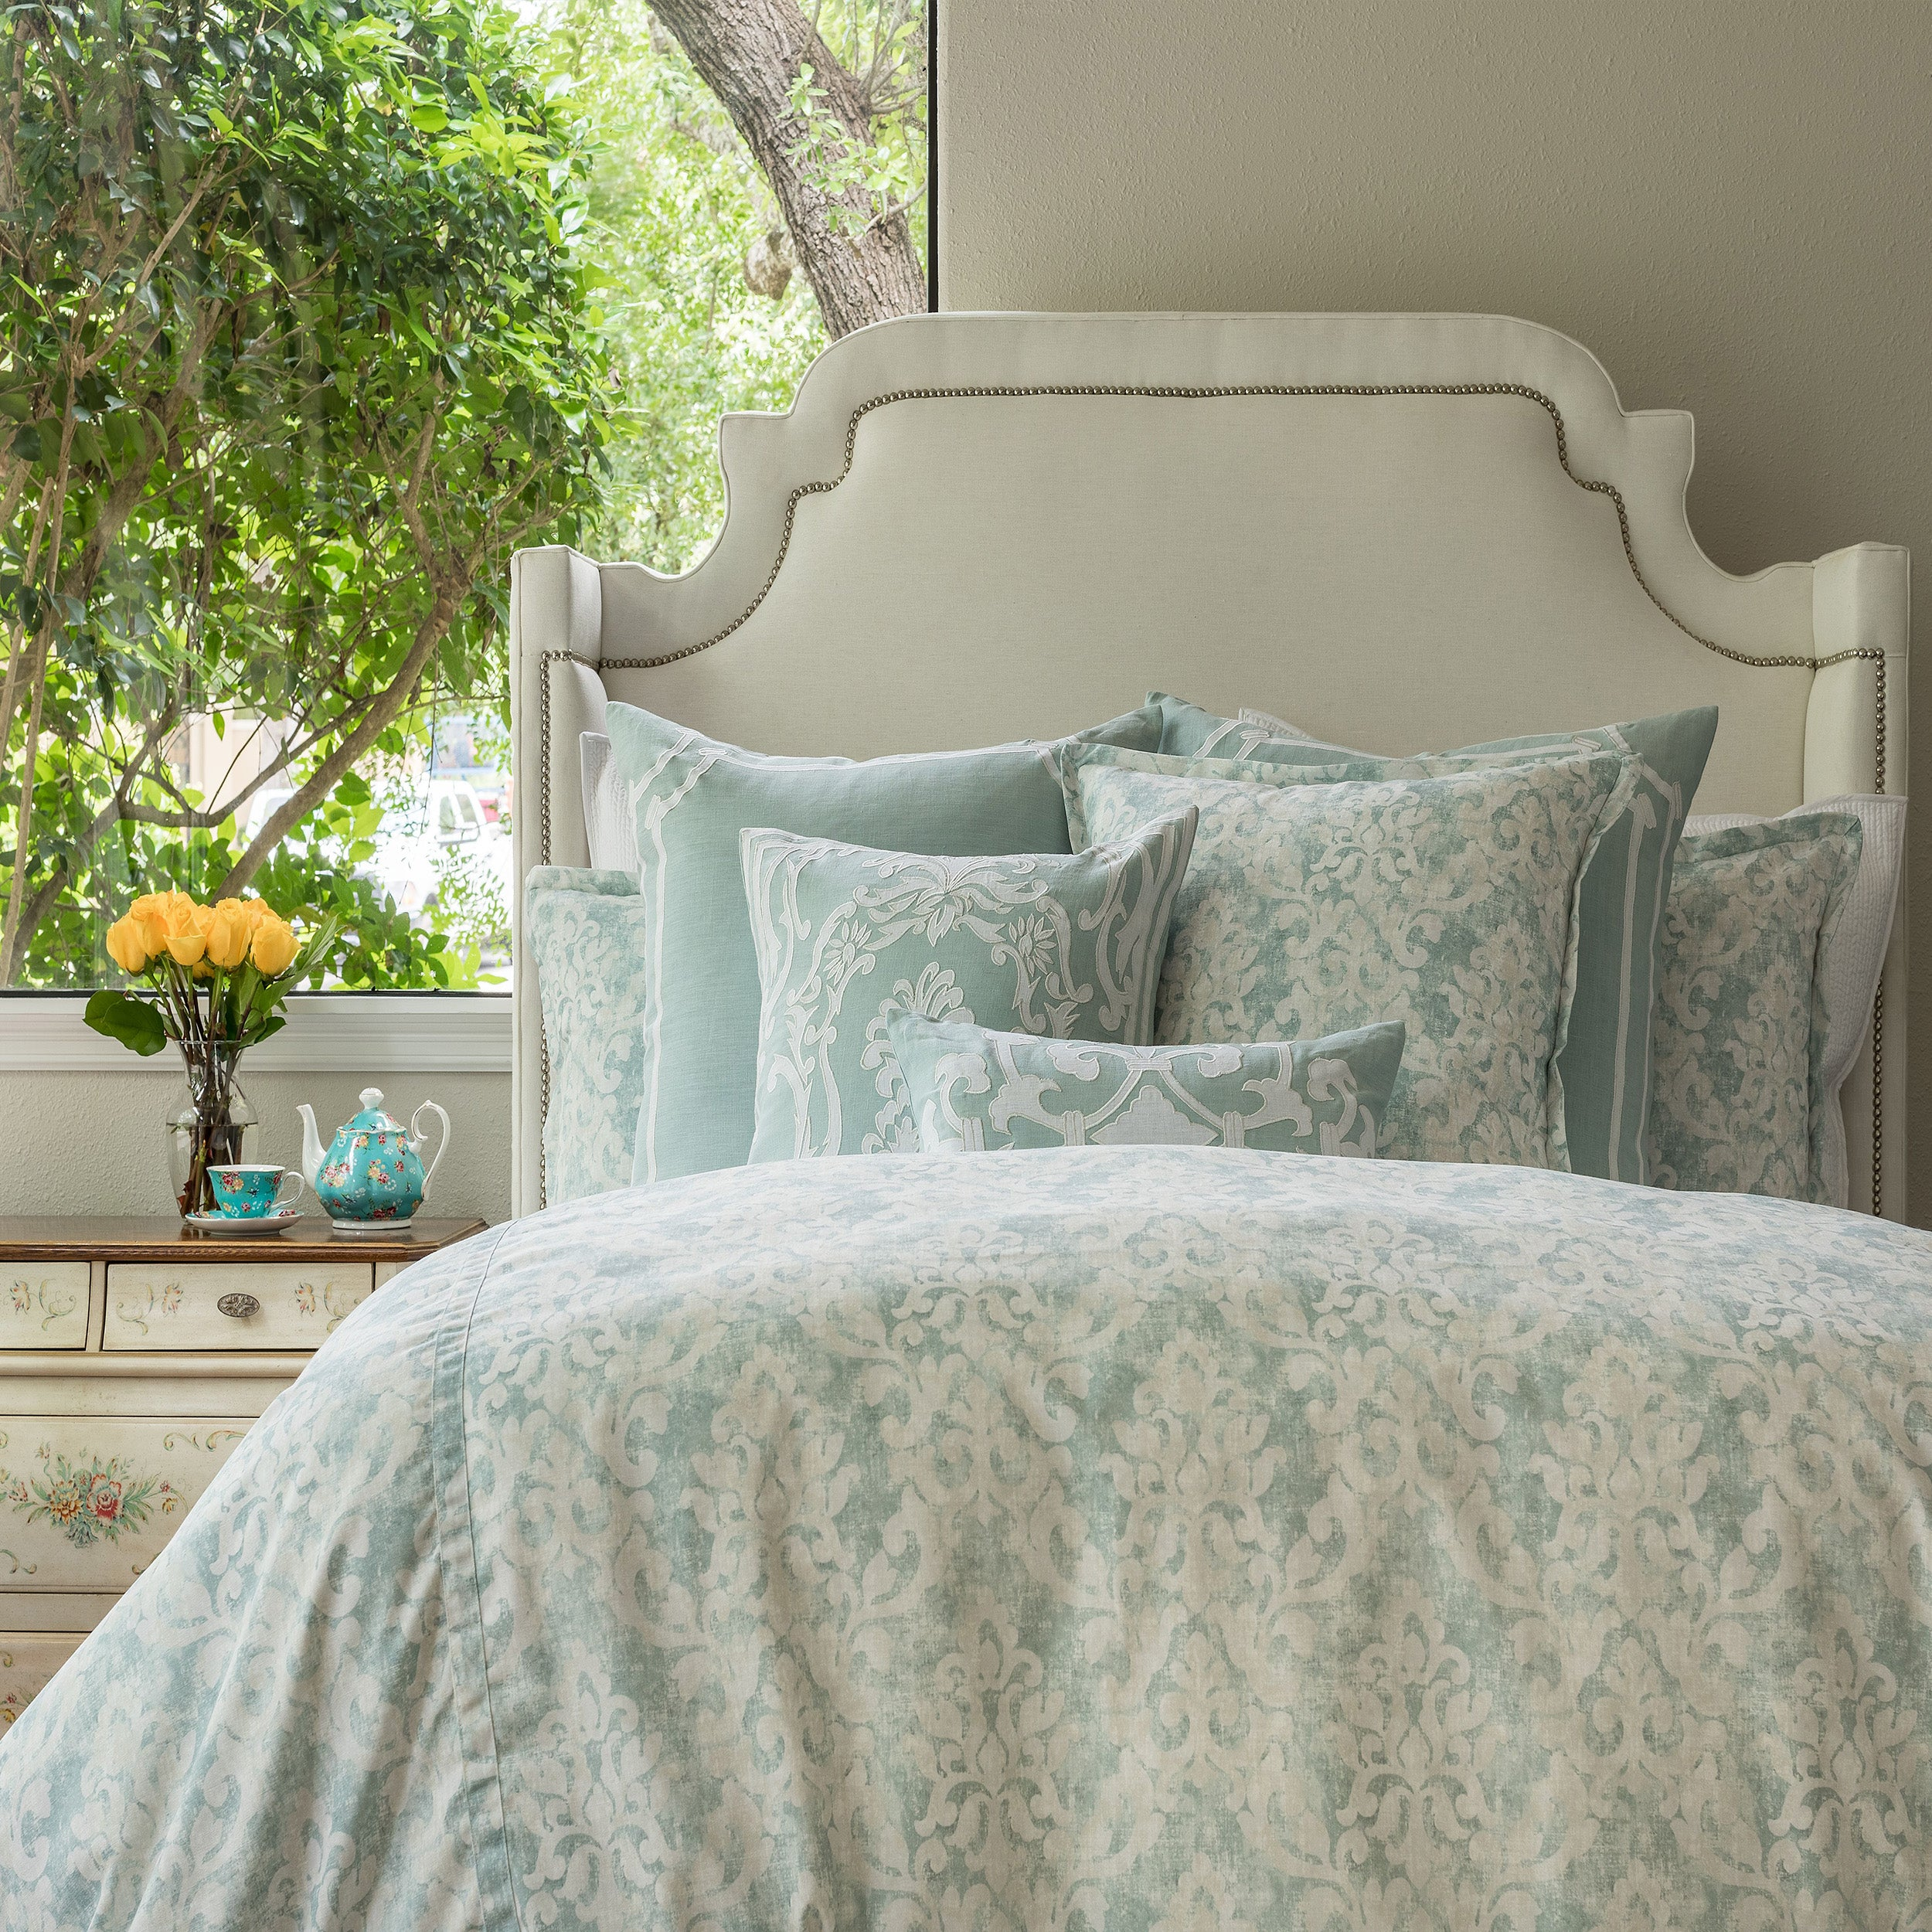 Milan Spa Duvet Cover - Lili Alessandra [Luxury comforter Sets] [by Latest Bedding]